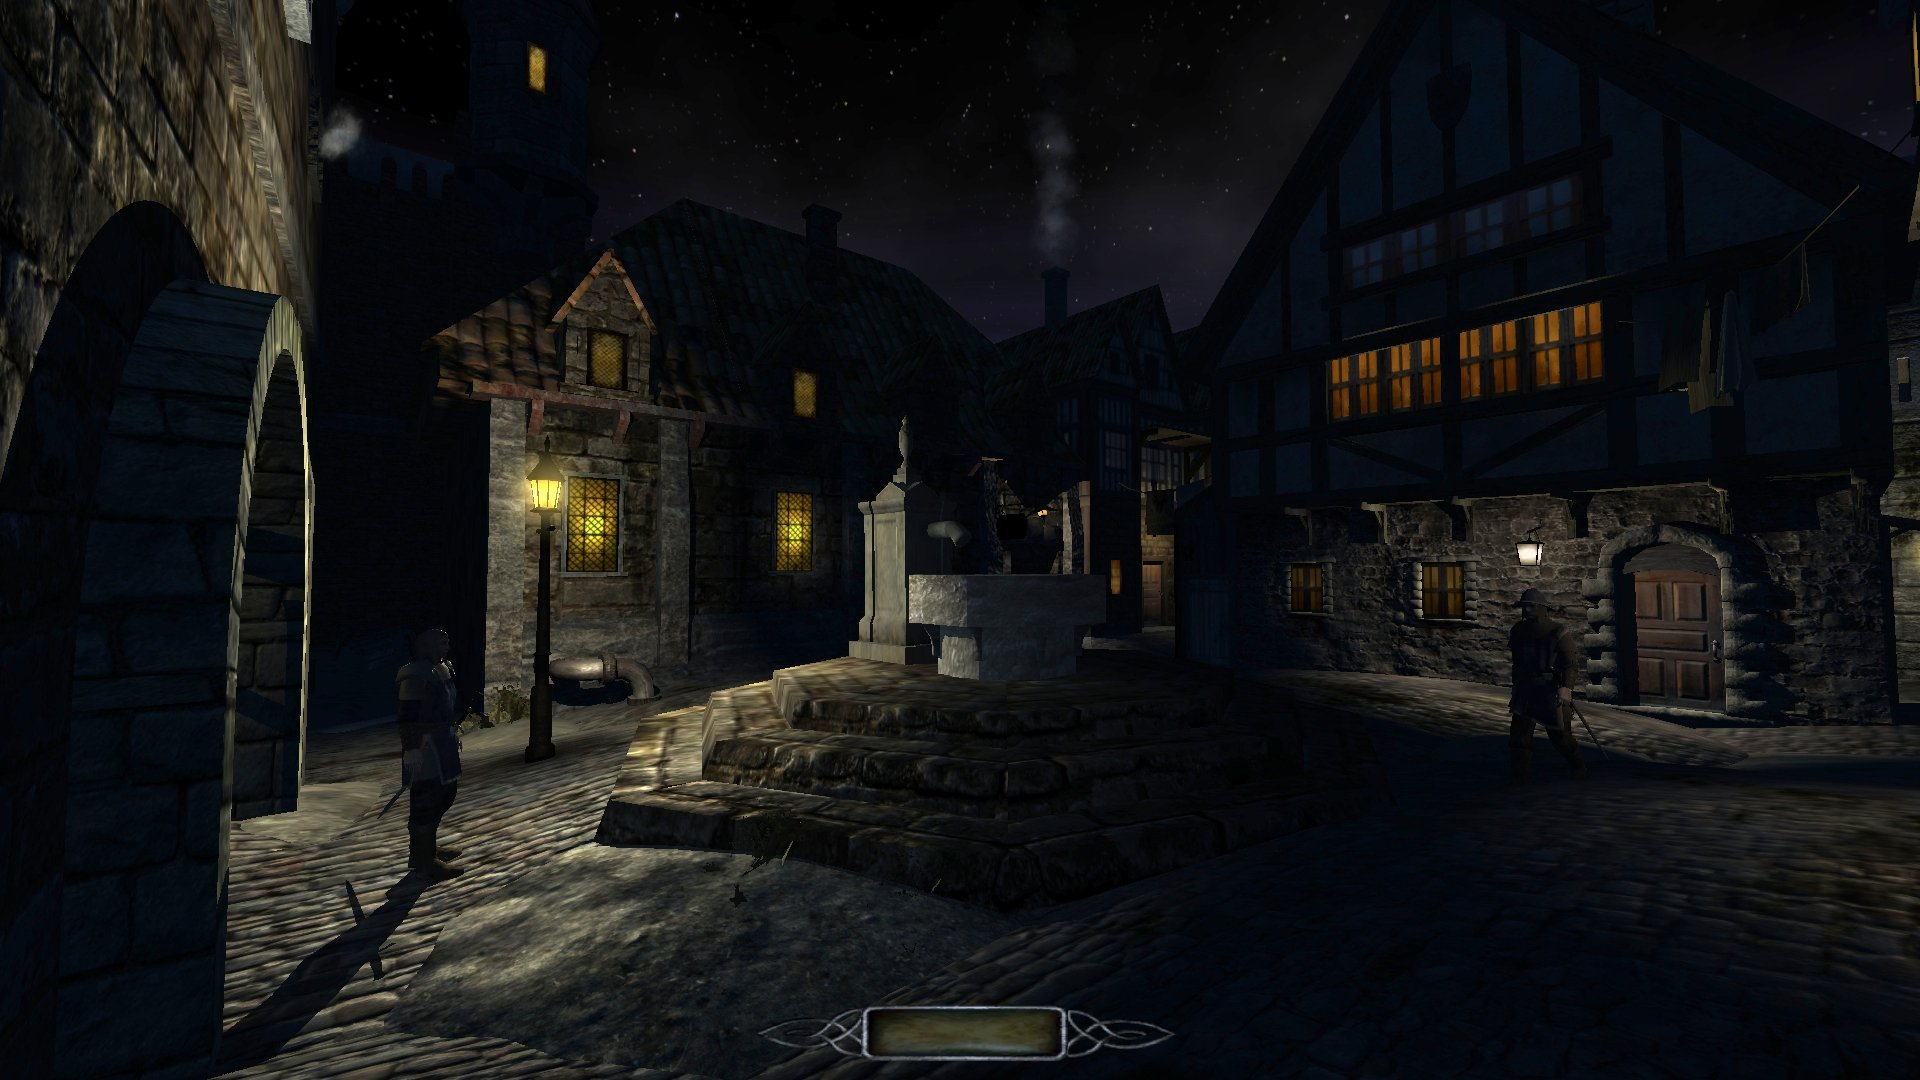 Play Thief Like Game The Dark Mod On A Chromebook